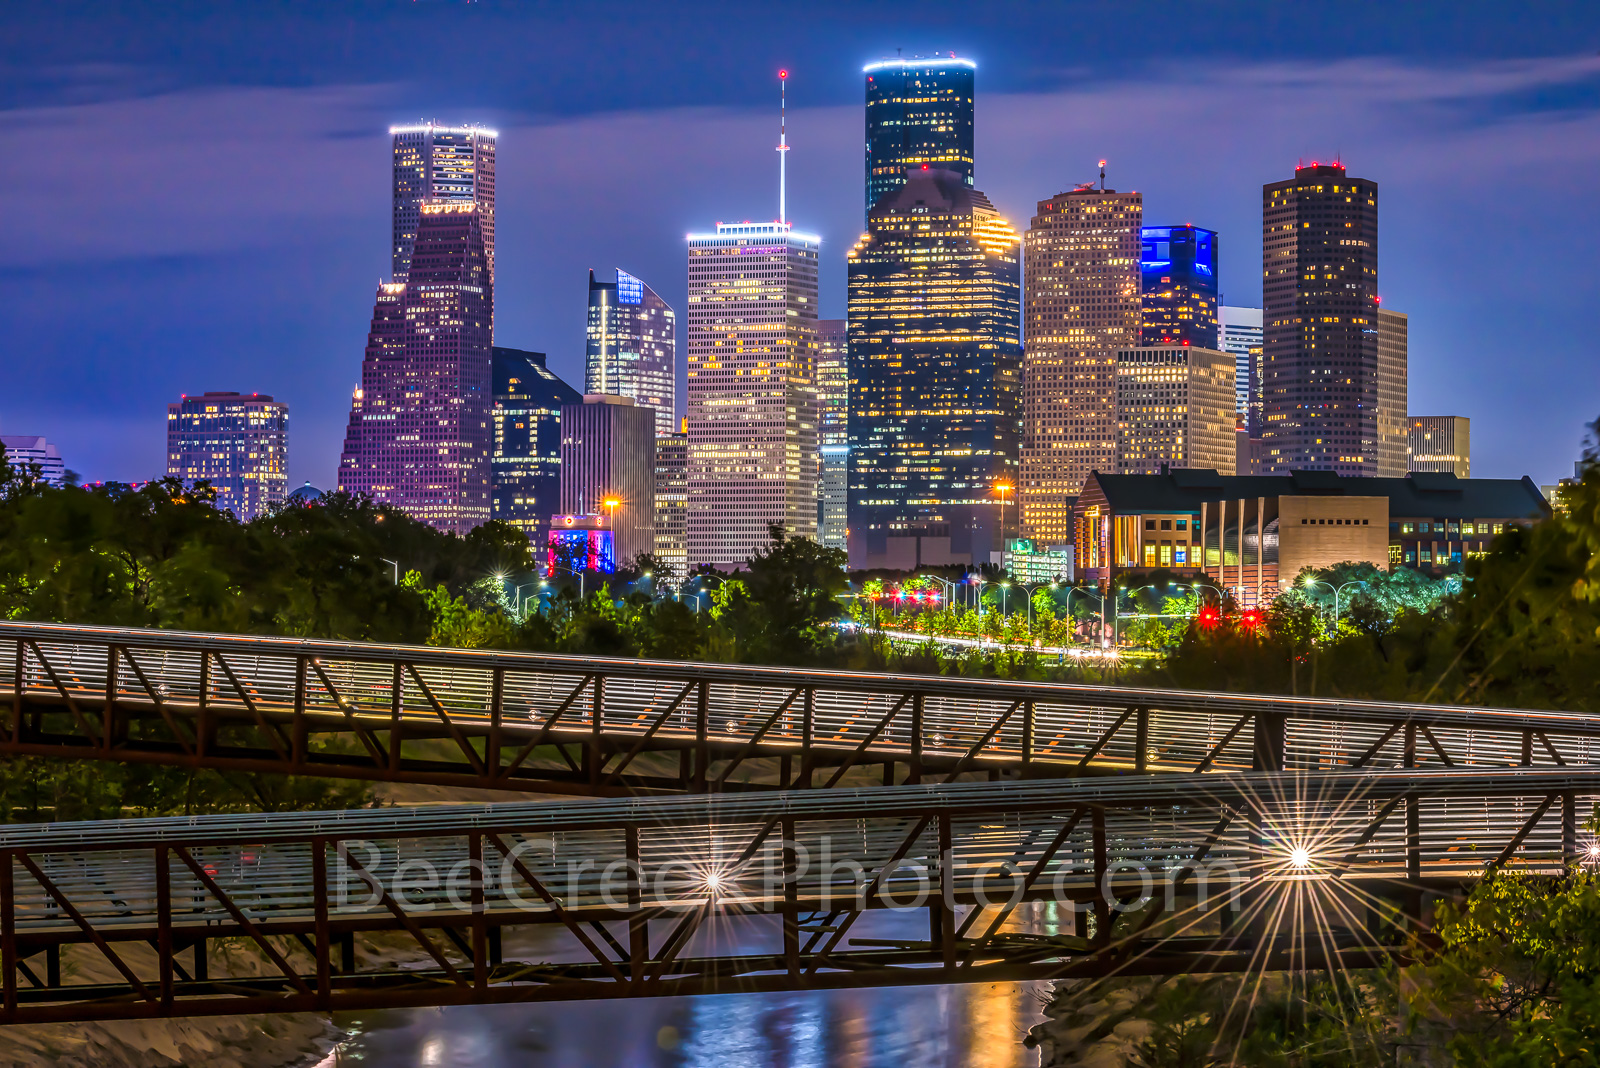 houston skyline, rosemont, pedestrian bridge, buffalo bayou, twilight, downtown,night, city, parks, cultural events, theater district, sports, music, events, performing arts, art groups, opera, plays,